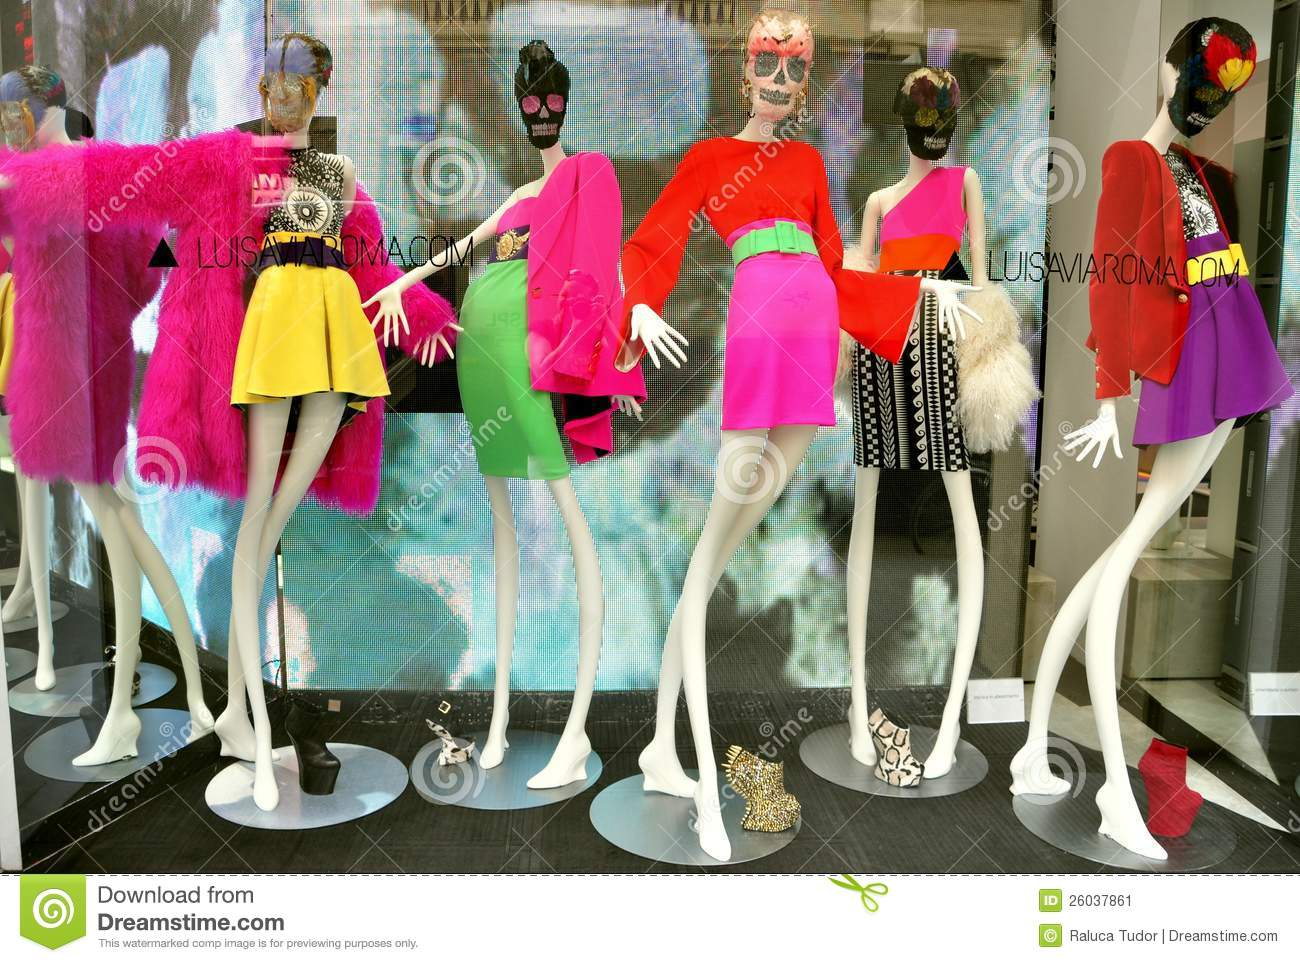 d57cea29510 Italian luxury fashion shop in Florence: Luisa Via Roma boutique with  manniquins dressed in colorful clothes .